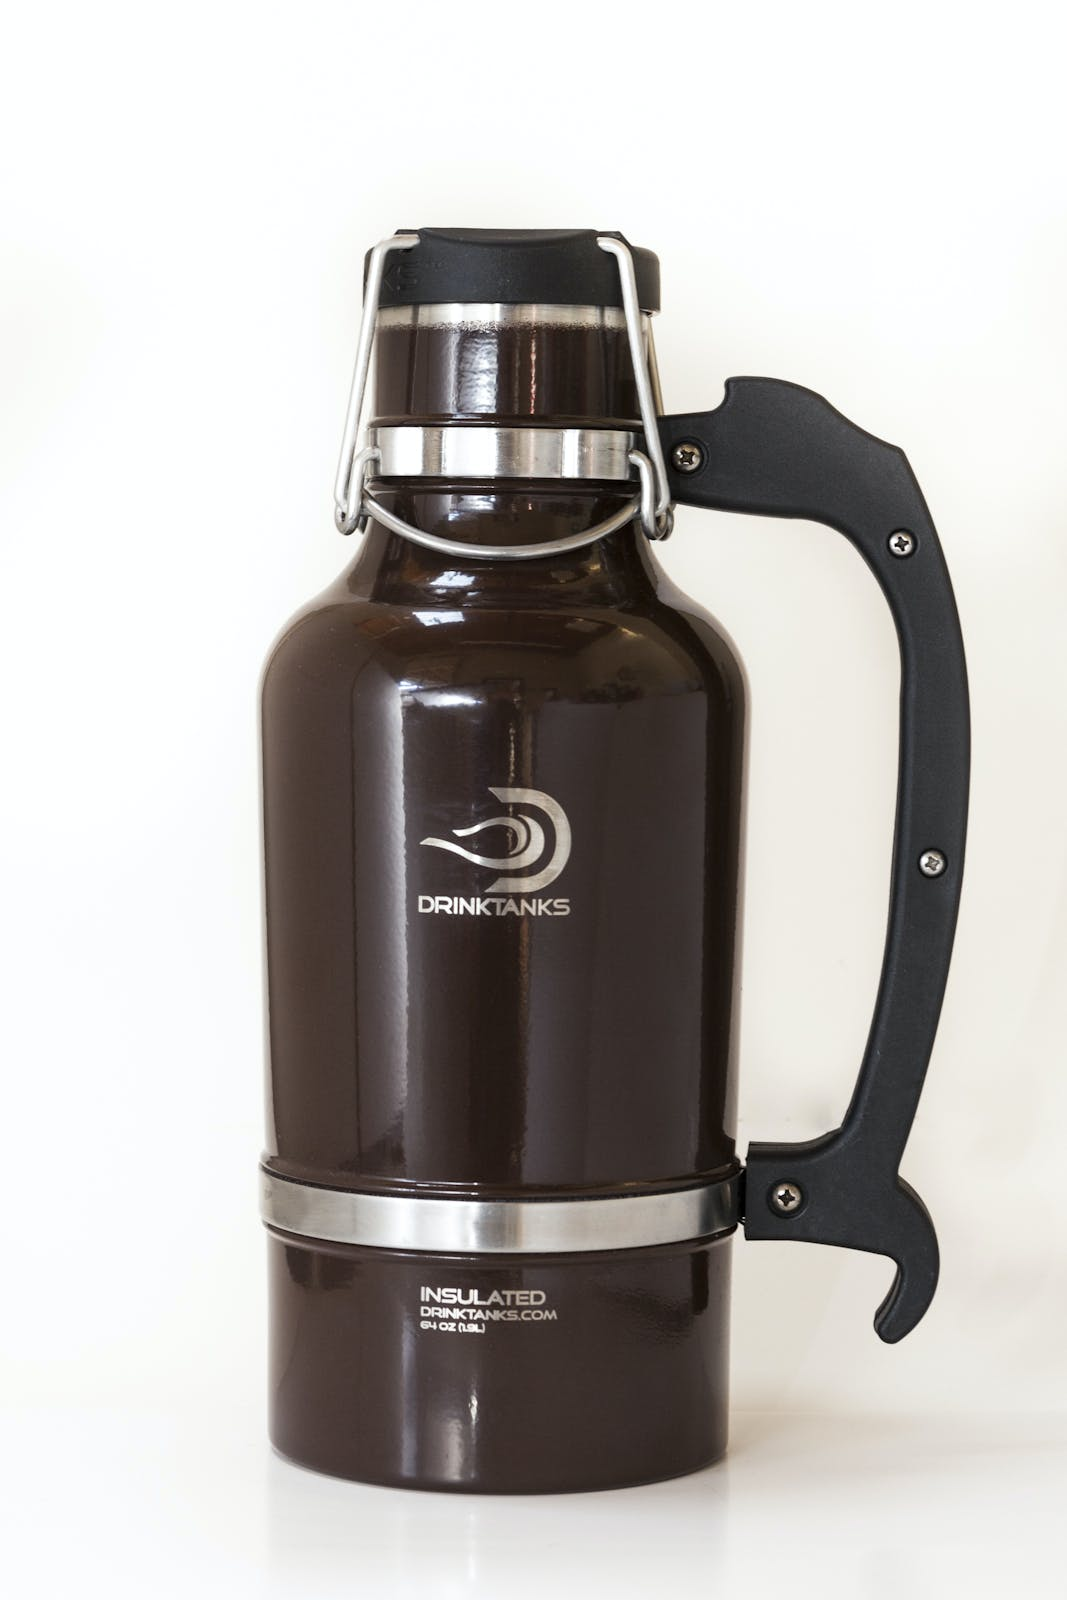 Drink Tanks Growler - Enjoy beer exactly as it was intended. Cold. Fresh. Carbonated. - 64oz Capacity (Brown) Growler sold by Drink Tanks